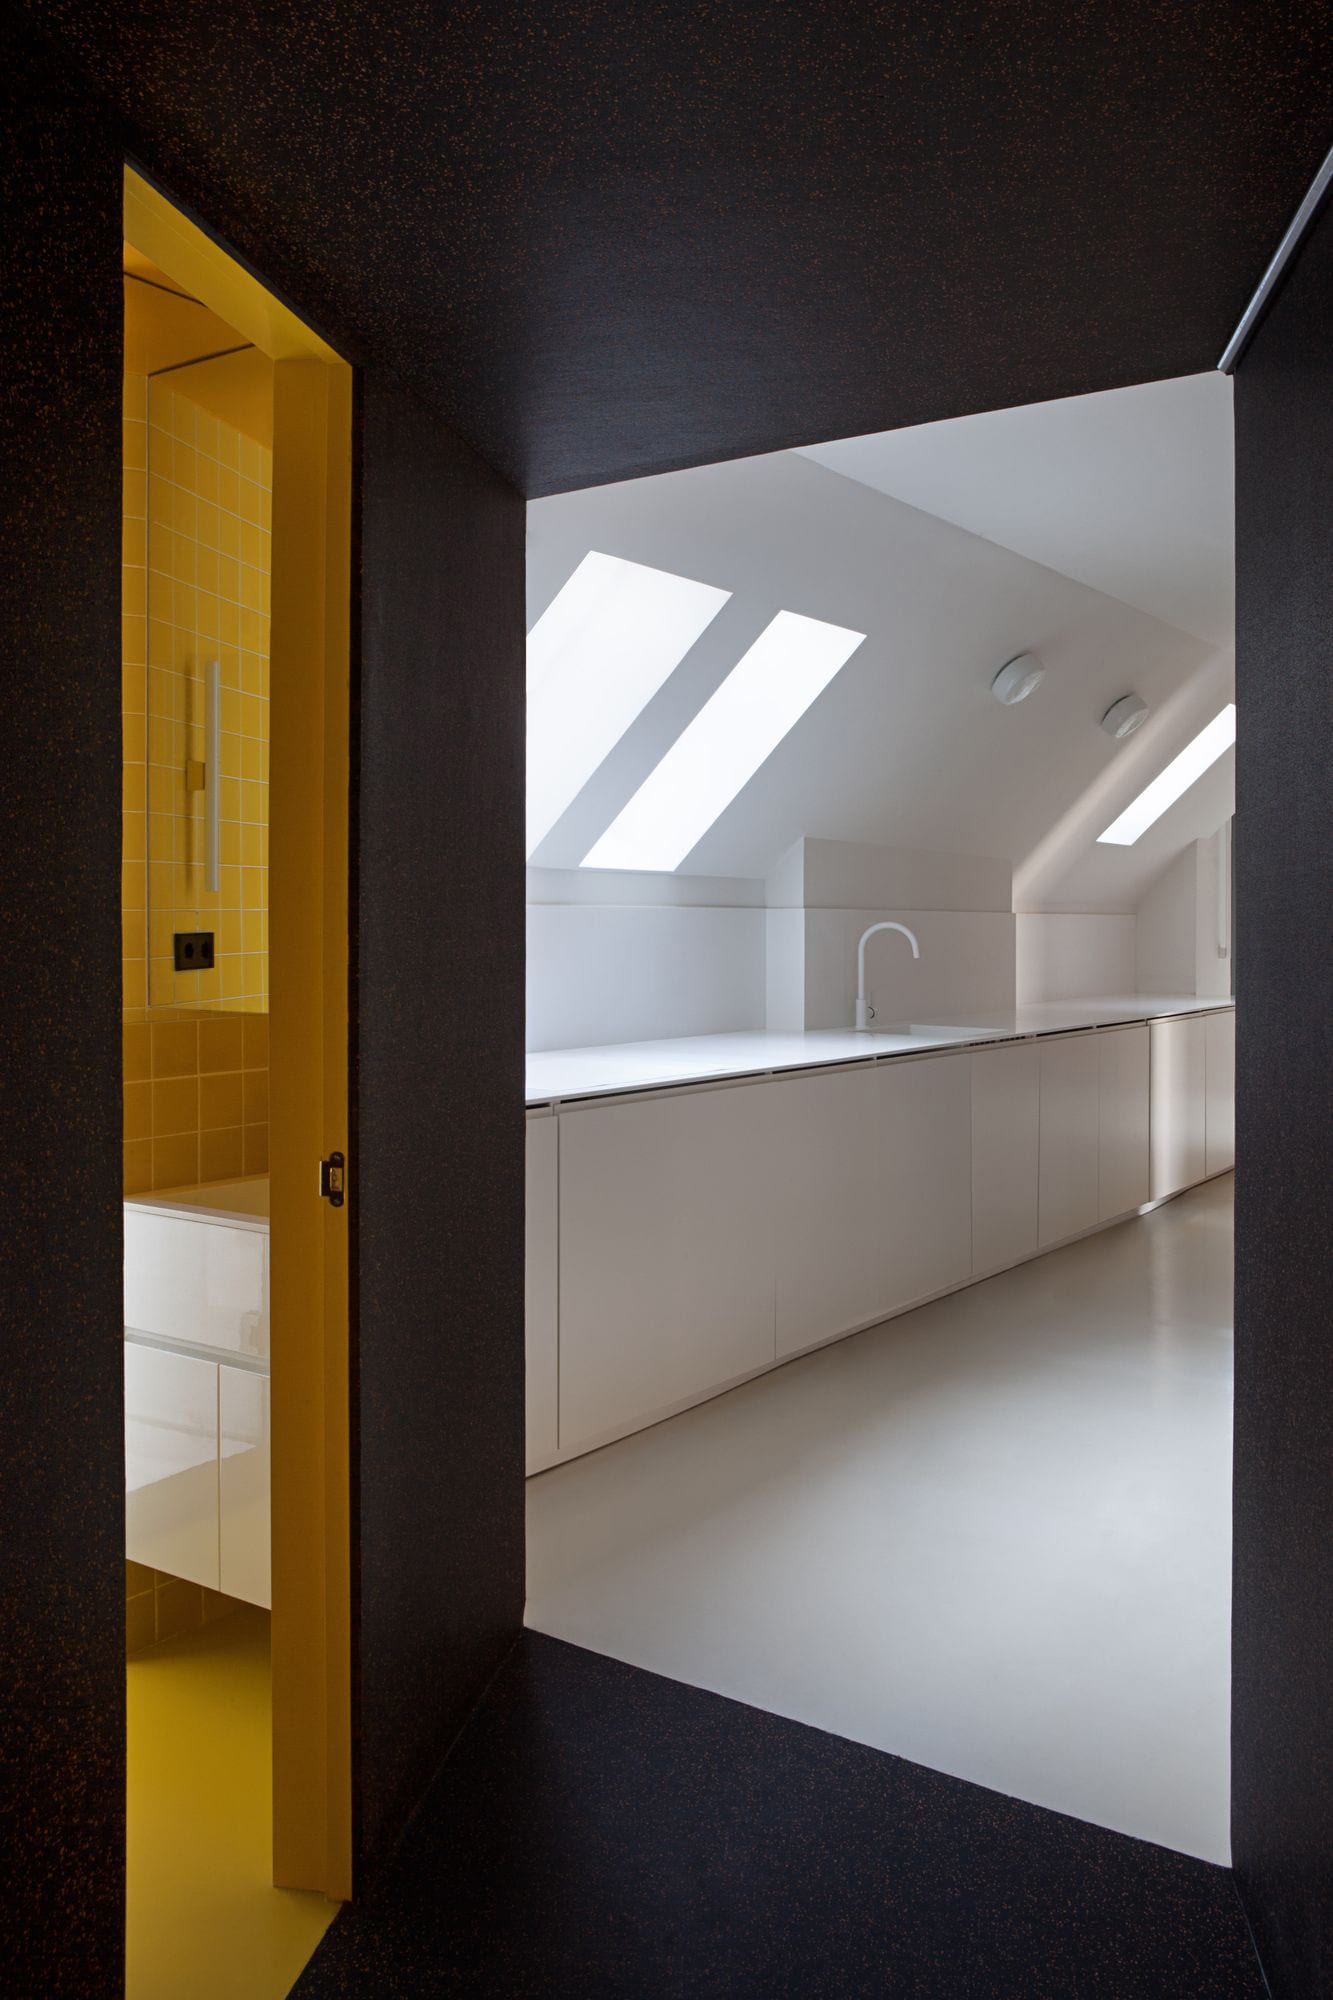 Composite Apartment in Madrid, Spain by Gonzalo del Val, Daniel Fernández Pascual & Alon Schwabe | Yellowtrace